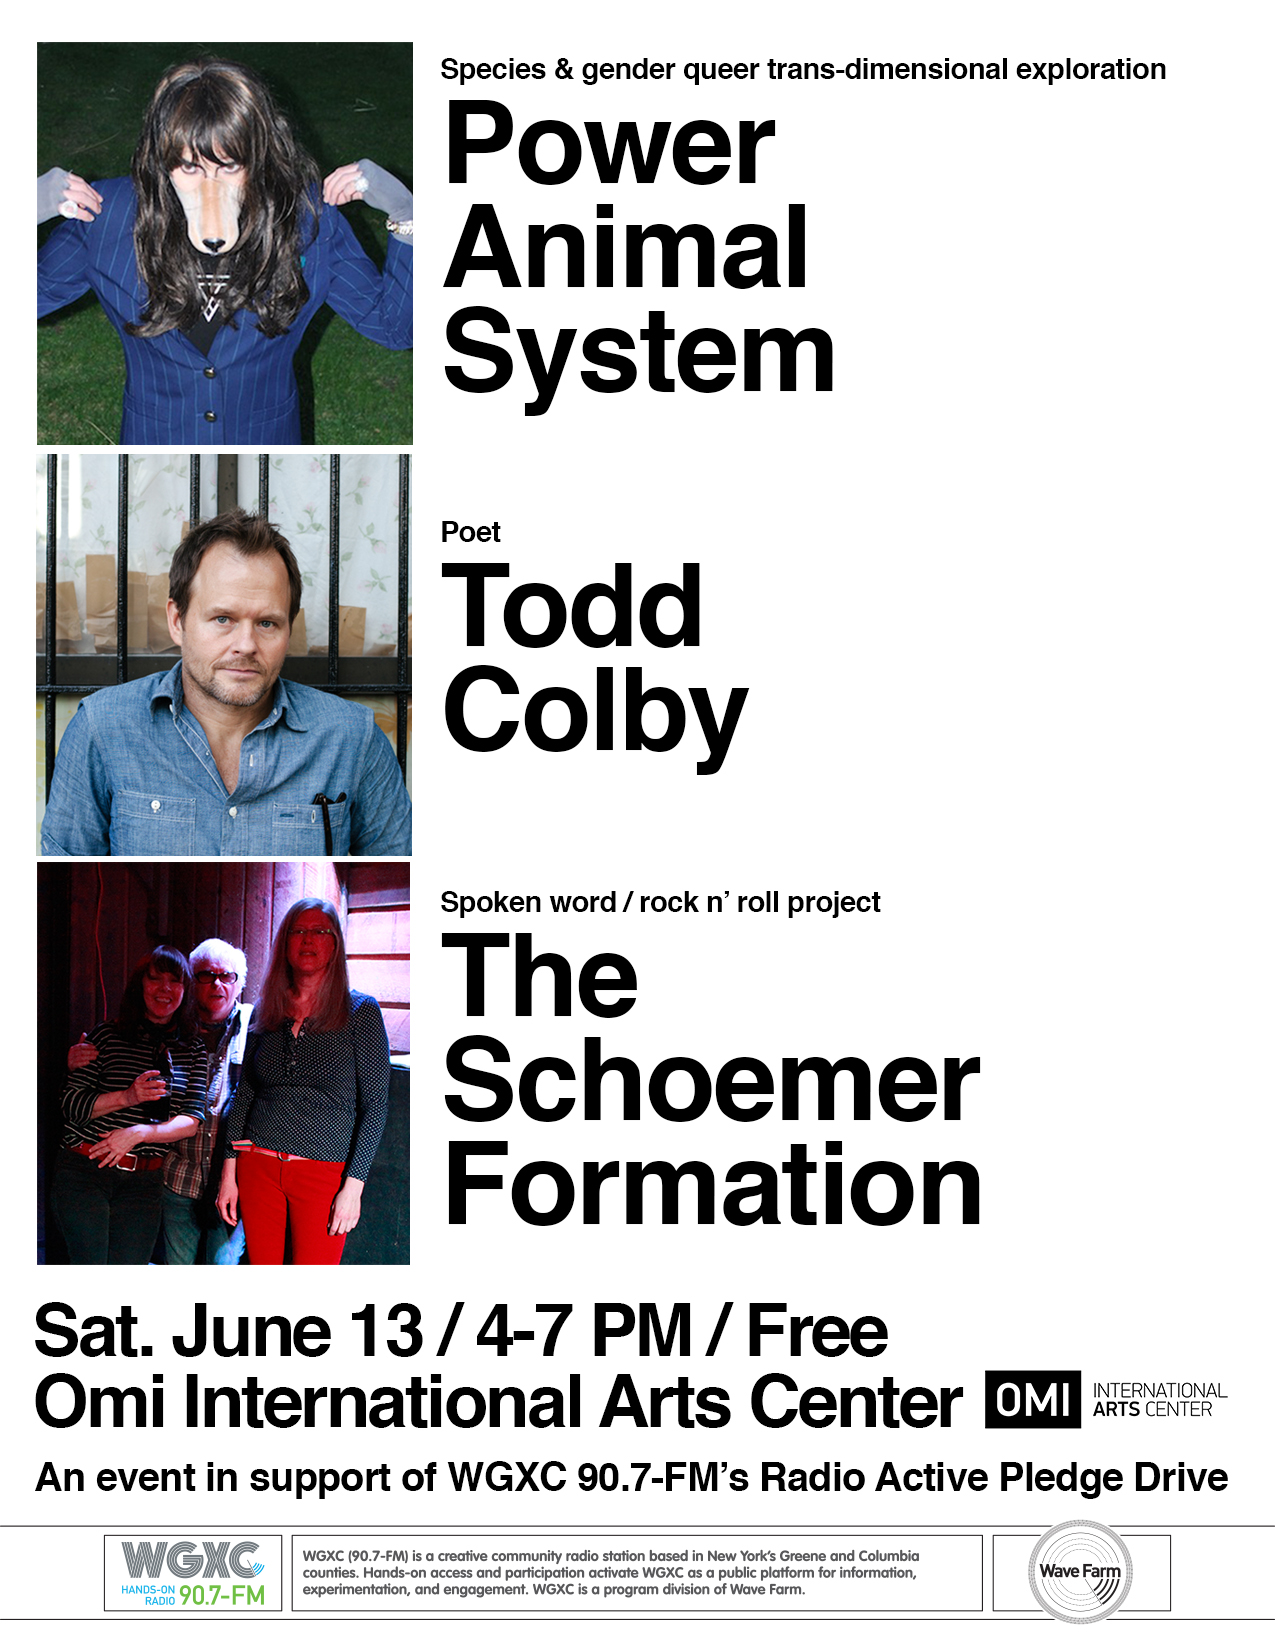 Power Animal System, Todd Colby, The Schoemer Formation Flyer